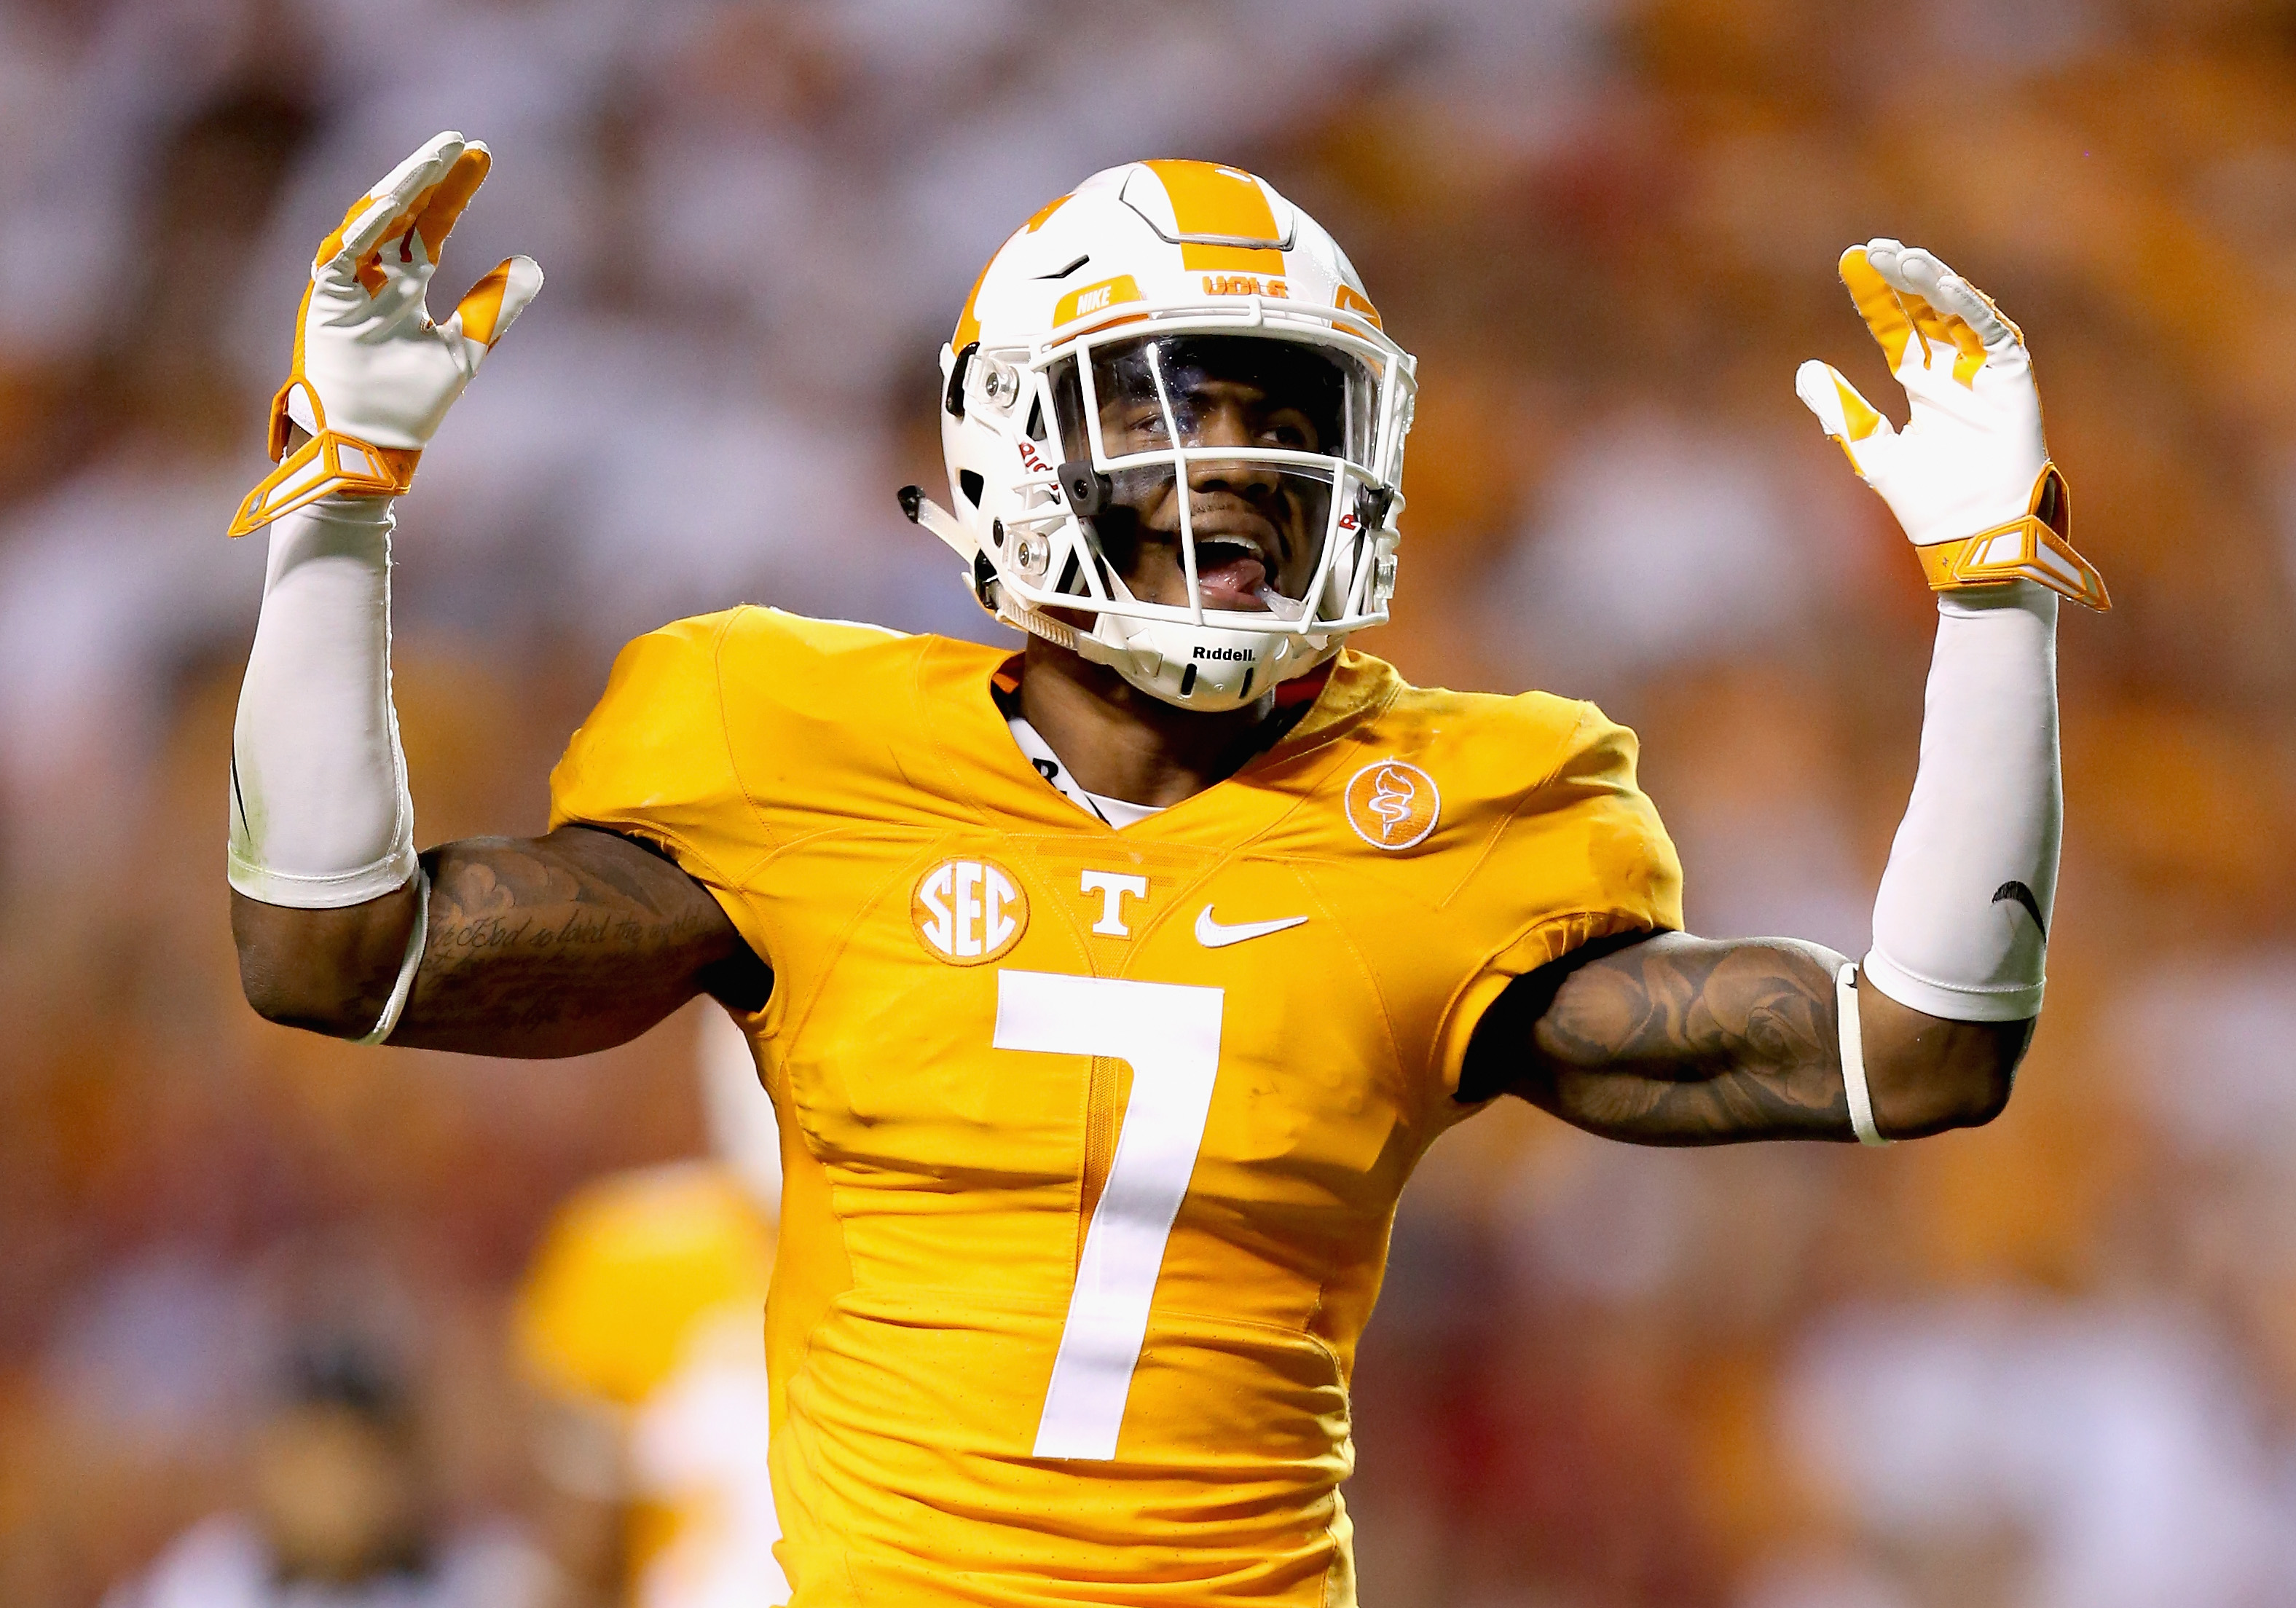 89ba718e4f4 2017 NFL Draft Results  Pittsburgh Steelers select DB Cameron Sutton with  3rd round pick